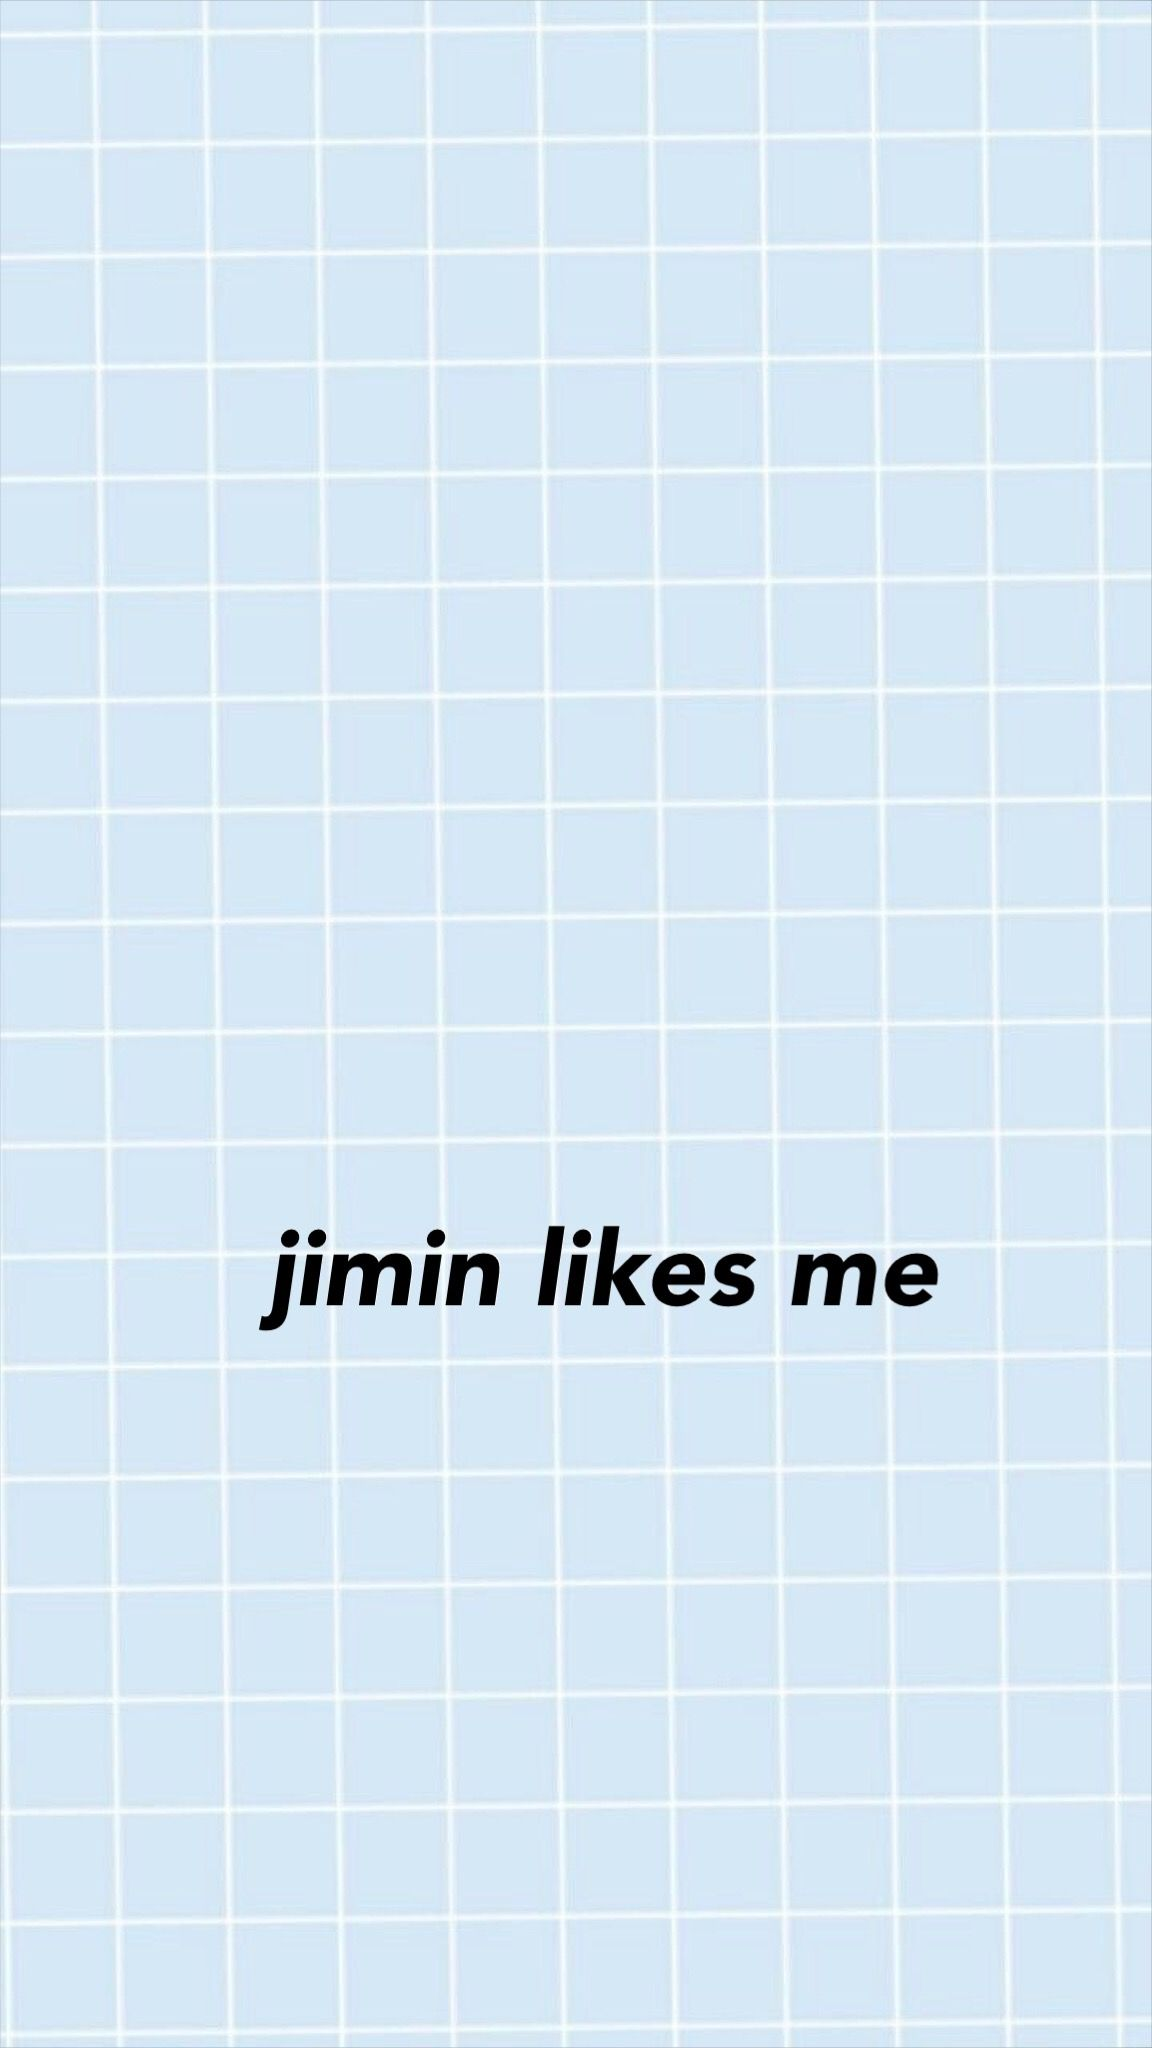 Pin by gukiee on bts iphone cute wallpaper Bts memes